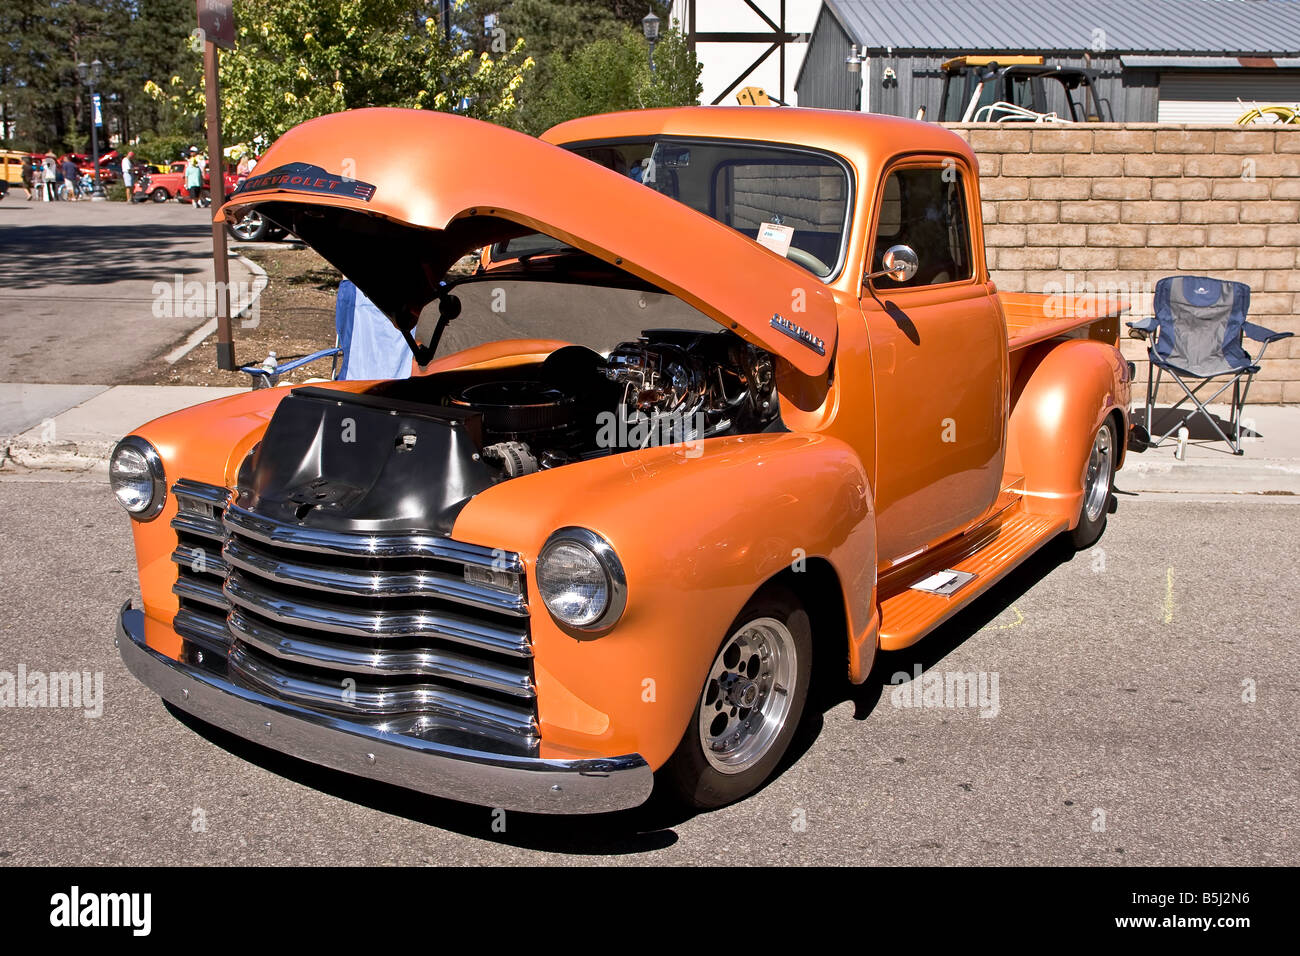 Chevrolet Truck Orange High Resolution Stock Photography And Images Alamy